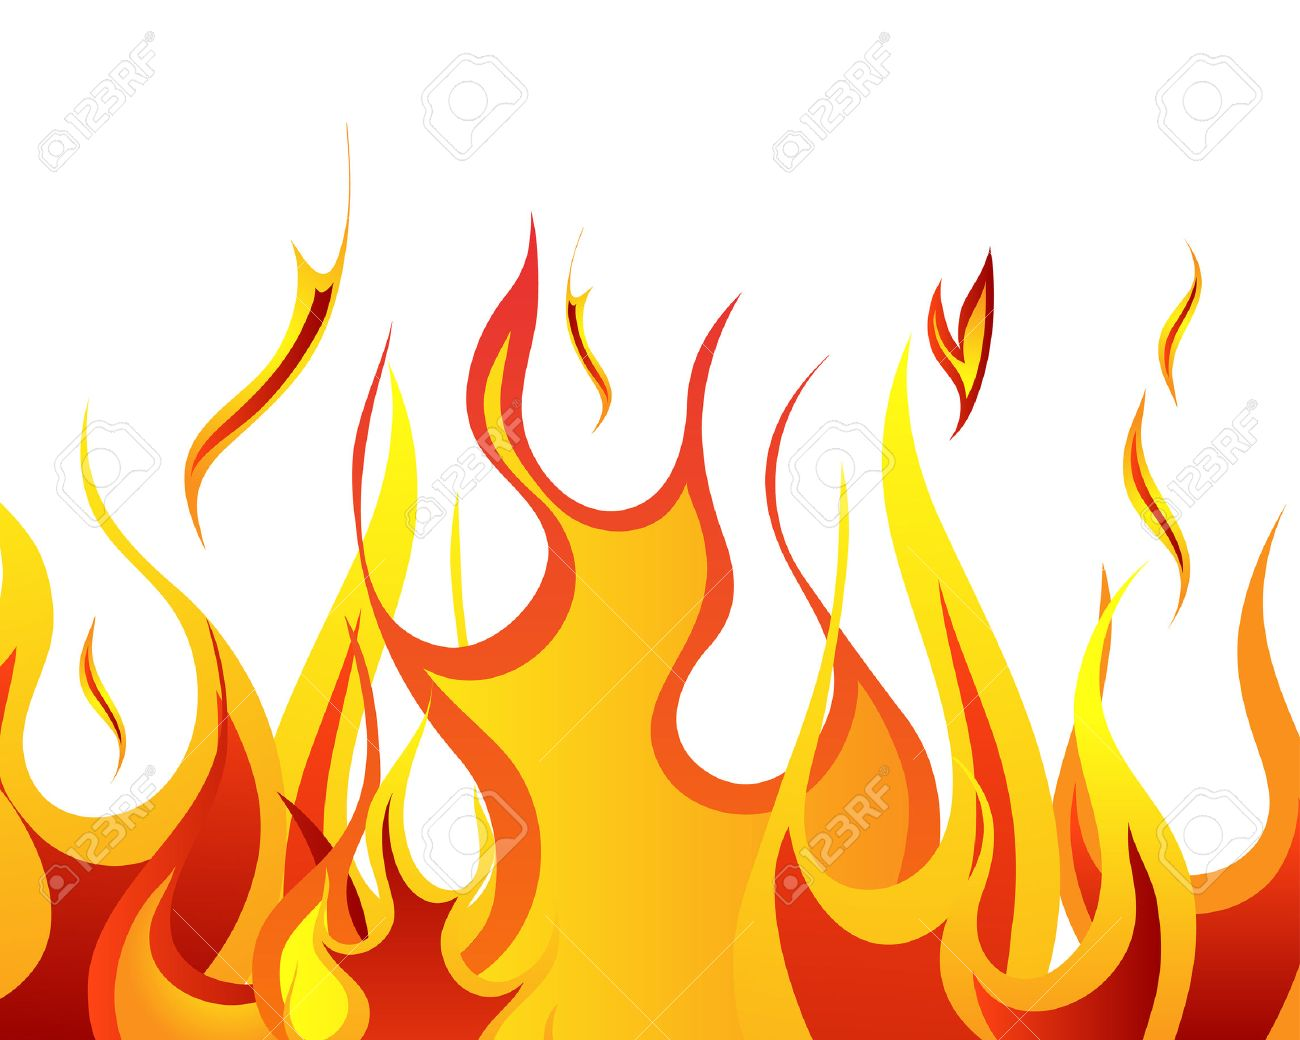 Cool Fire Designs to Draw Cool Flame Designs Drawings